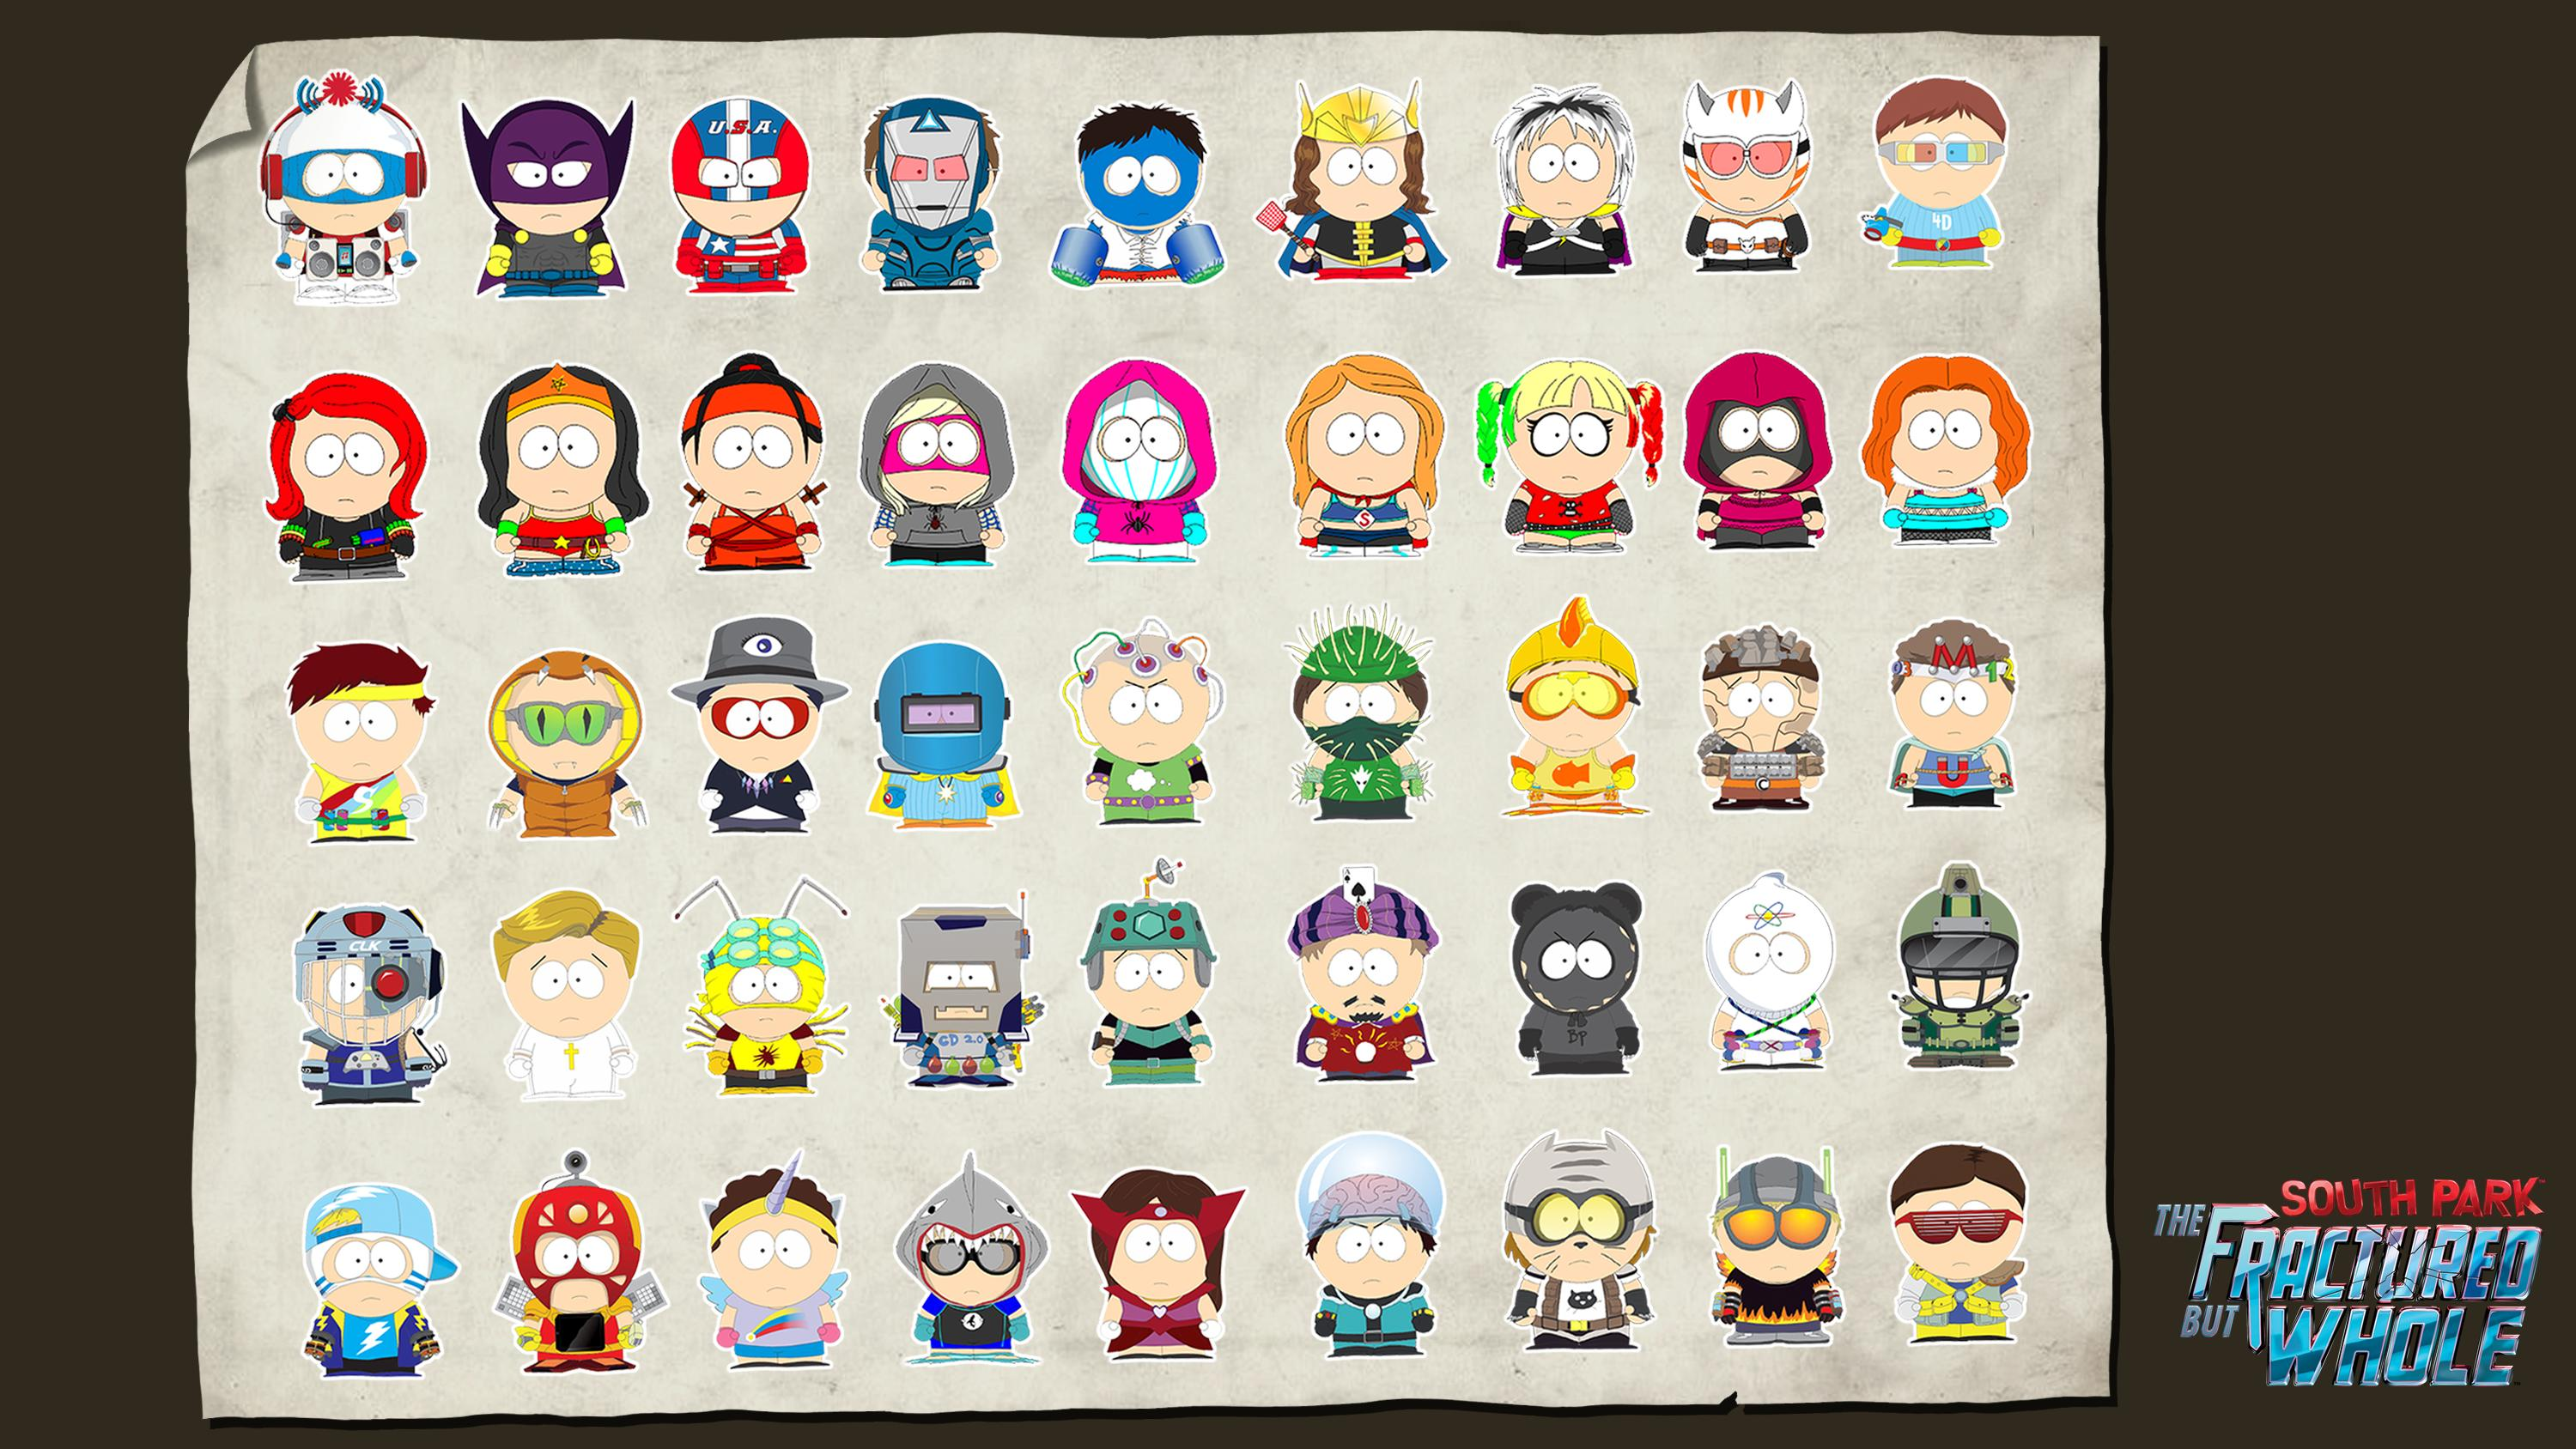 South Park Fractured But Whole Uplay Downloadable Wallpapers 3000x1688